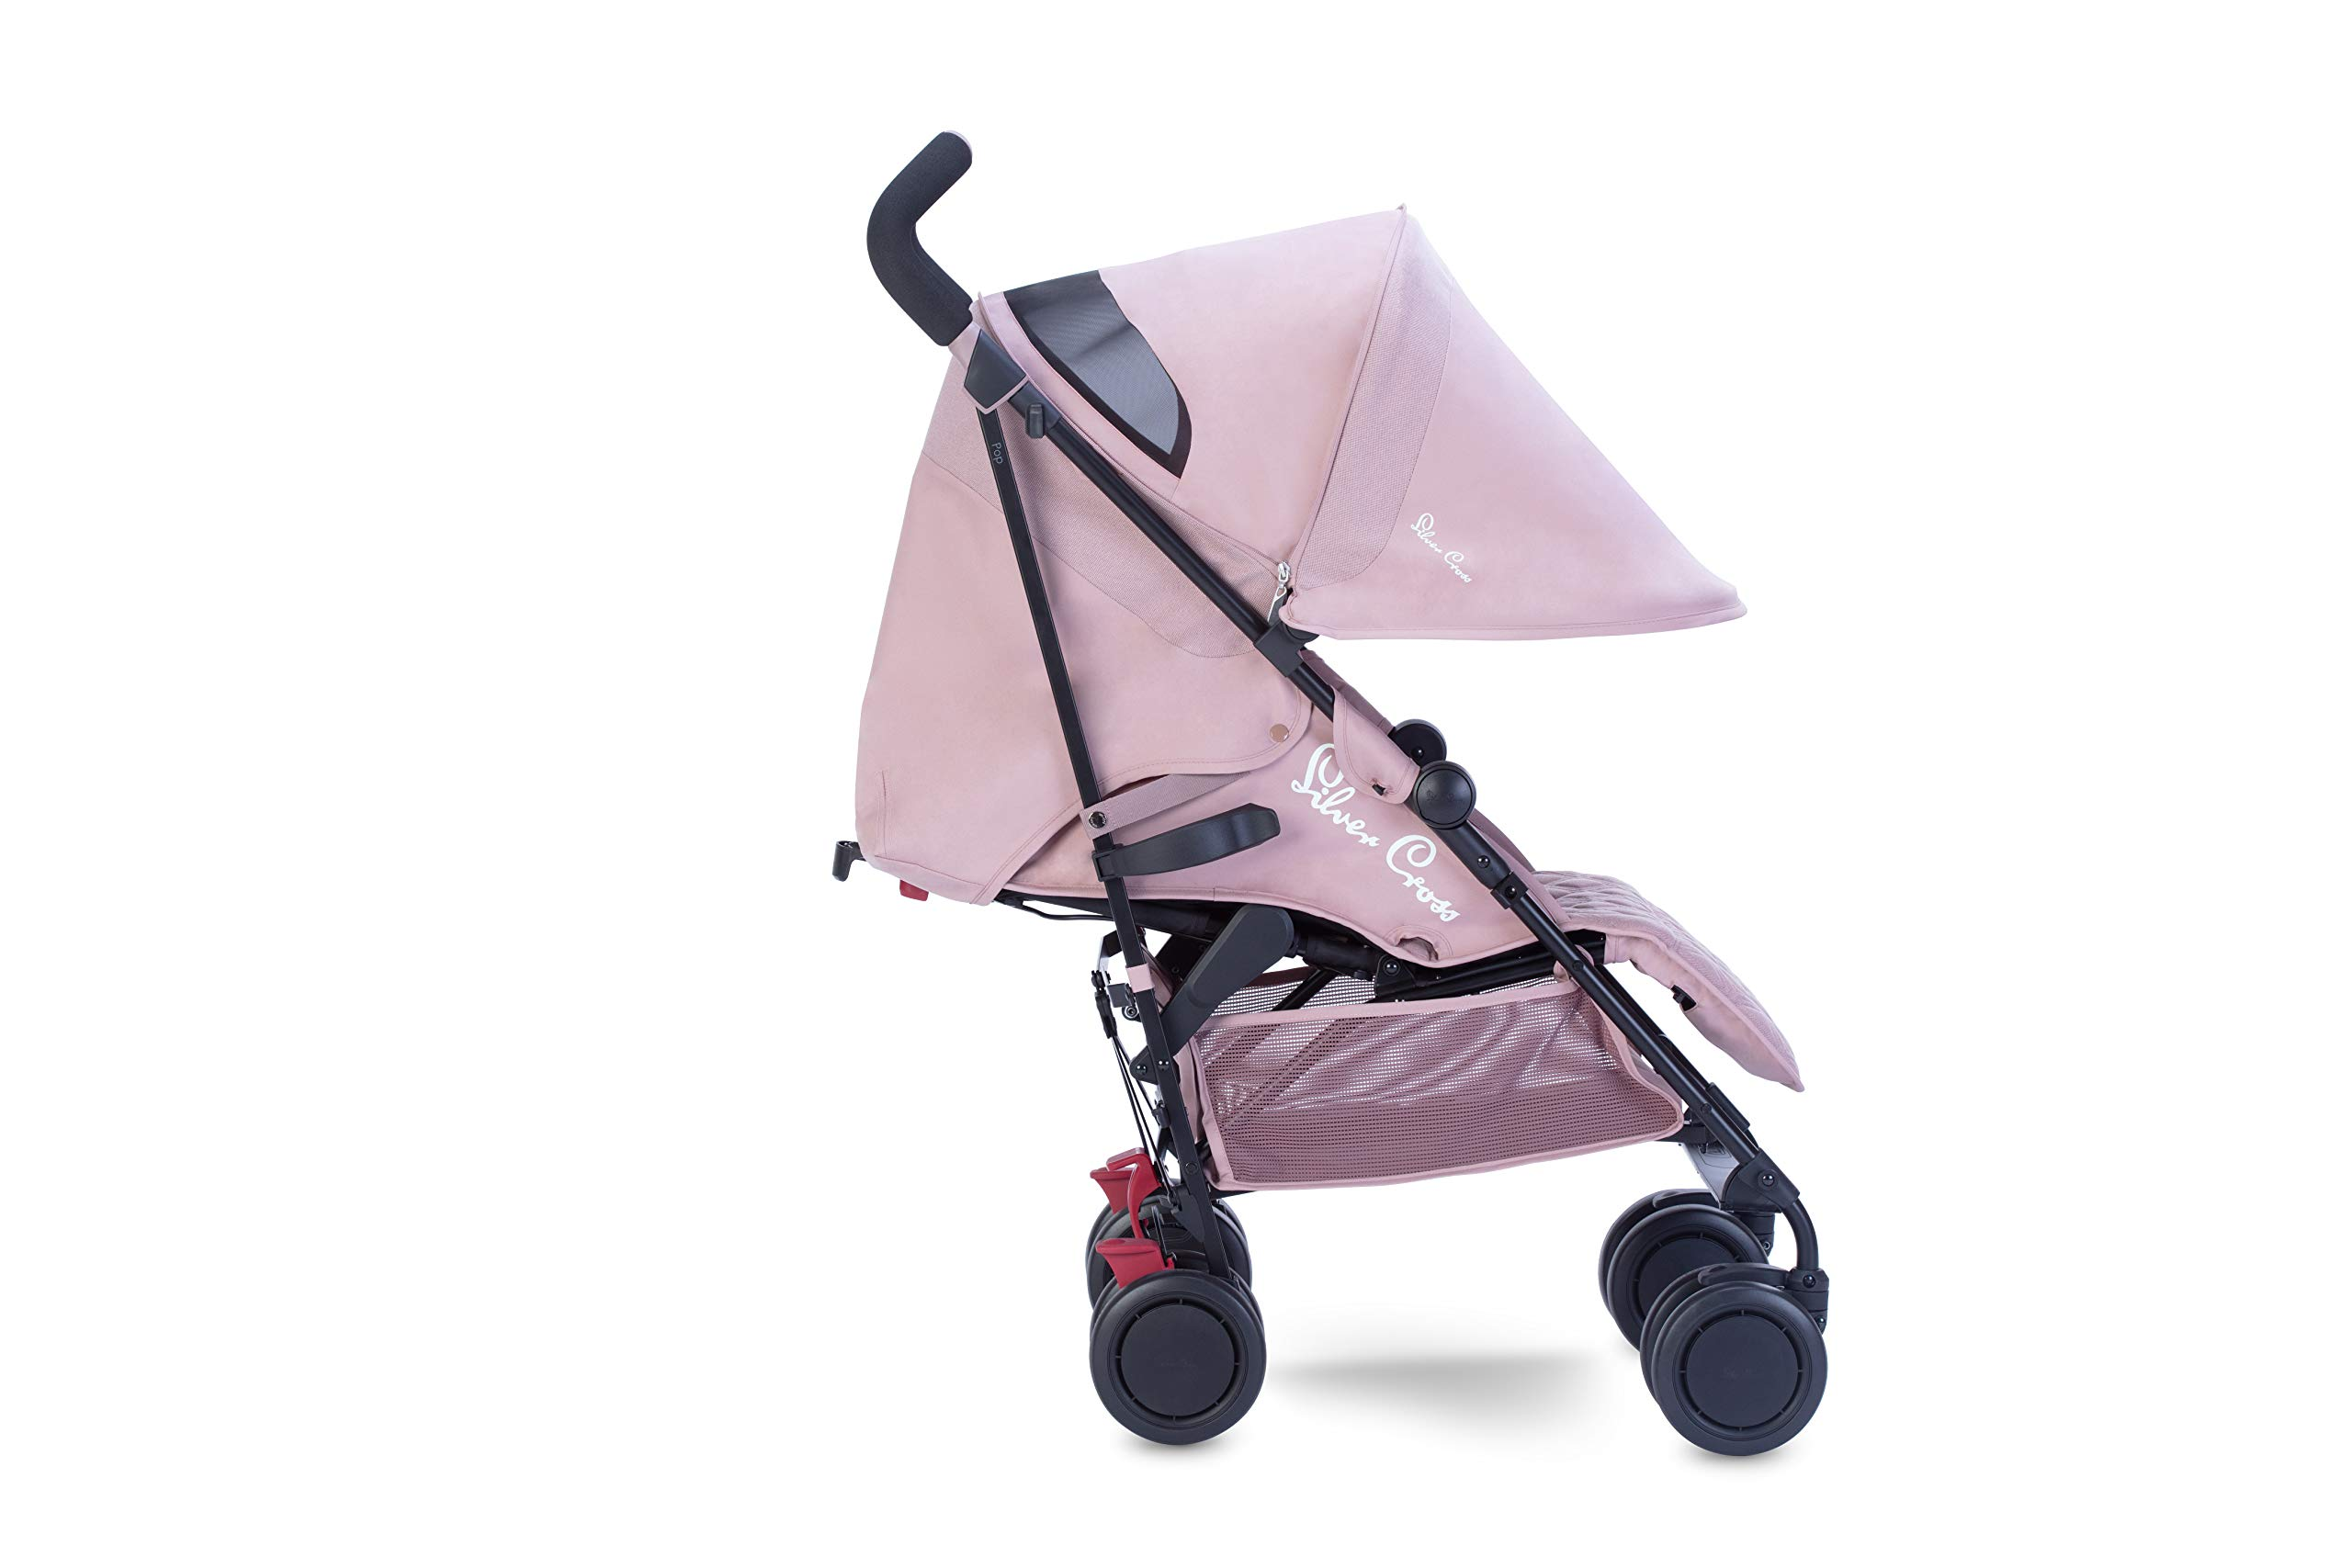 Silver Cross Pop Stroller, Compact and Lightweight Pushchair - Blush Silver Cross NEWBORN TO TODDLER: Suitable from birth up to toddlers (25kg), sitting upright to watch the world, or reclining to a lie-flat position WATER AND WIND RESISTANT: Ideal for all weather conditions to keep your baby warm and protected from wind and rain LIGHTWEIGHT AND COMPACT: Quick and easy one-handed fold feature with a carry handle for ease positioned on the side of the matte black chassis 1